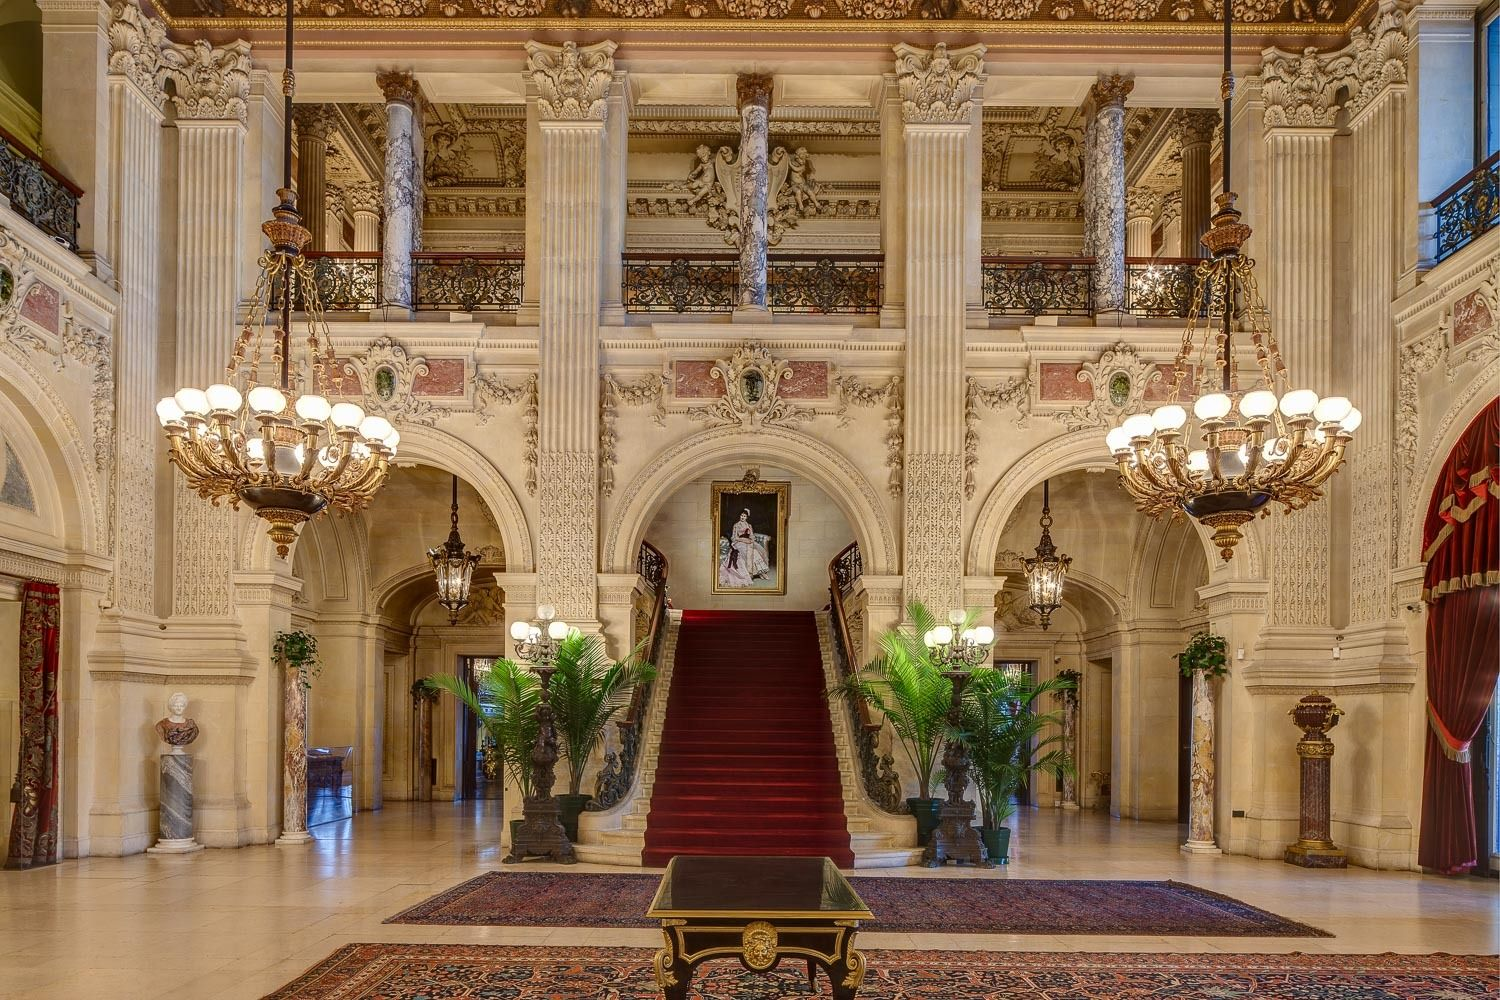 The Breakers Great Hall in the Italian Renaissance style